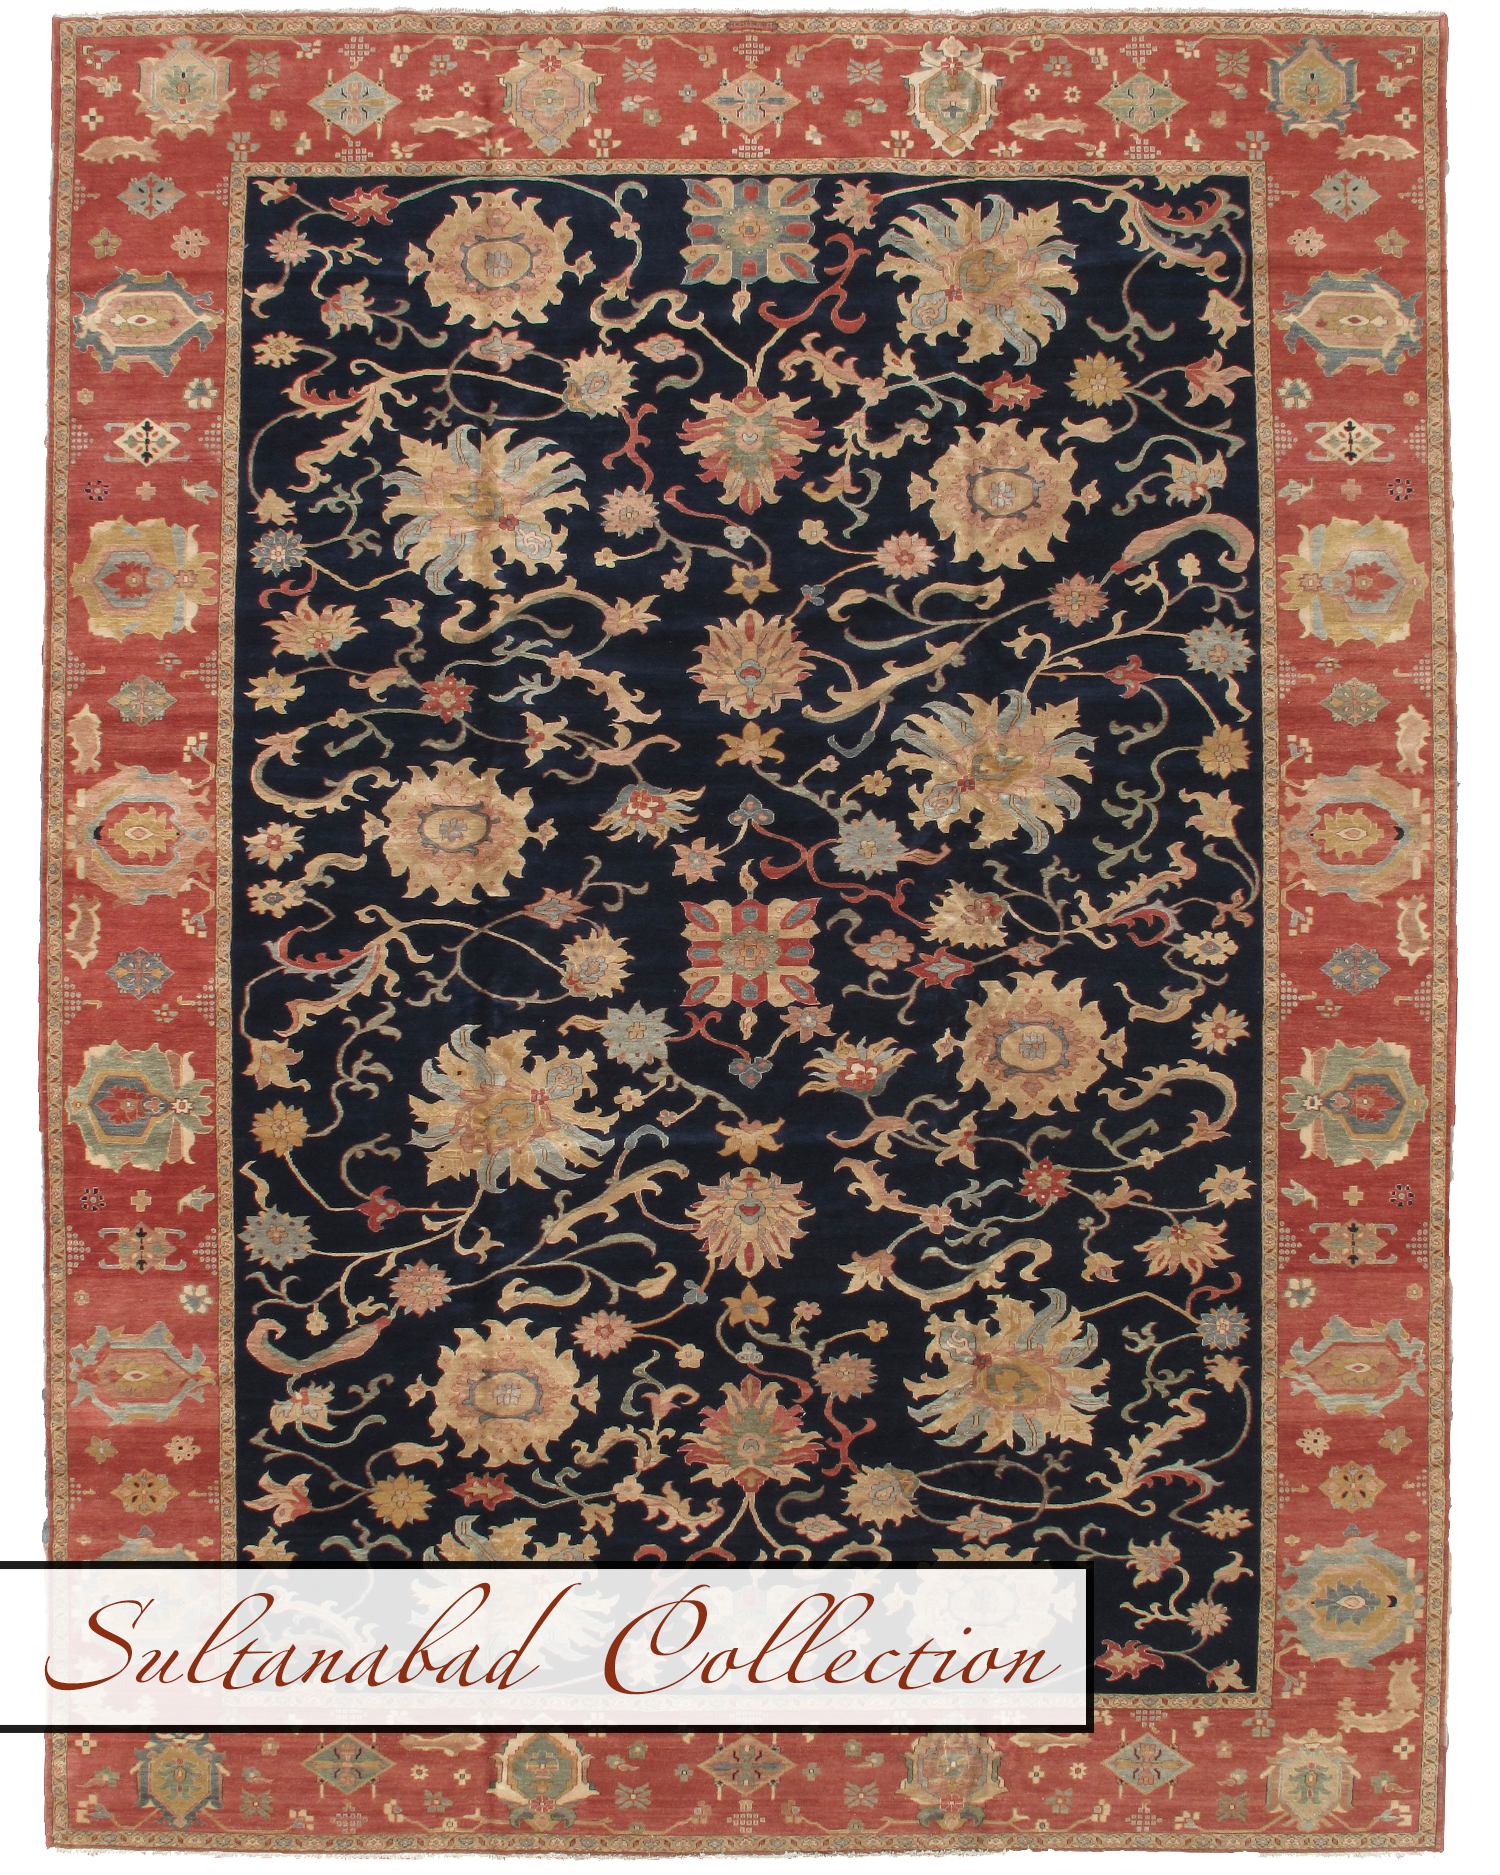 Sultanabad Collection